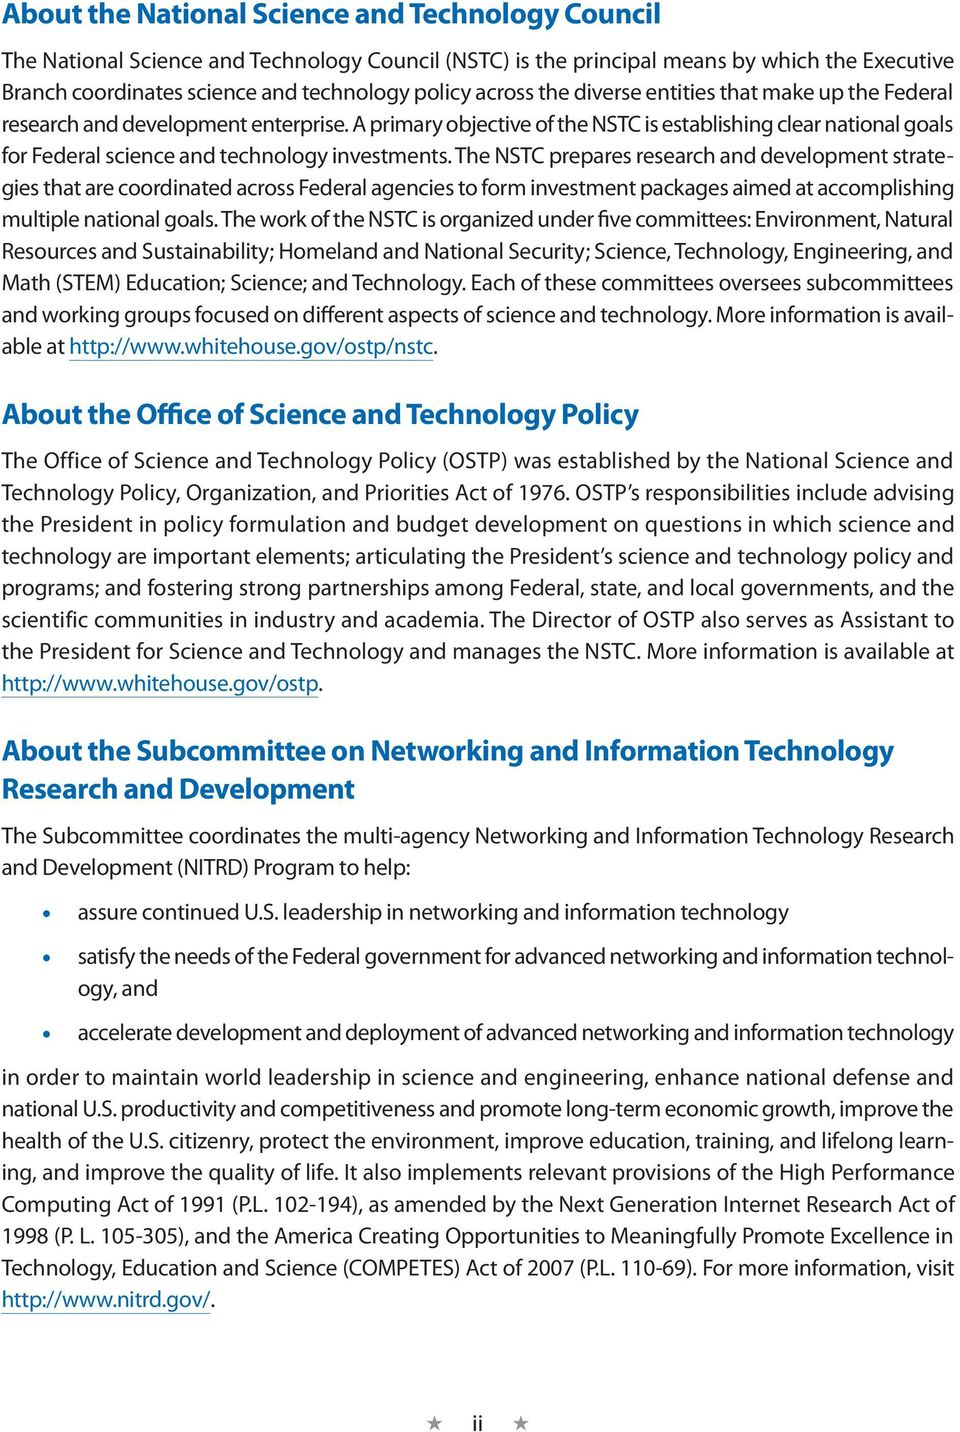 A primary objective of the NSTC is establishing clear national goals for Federal science and technology investments.